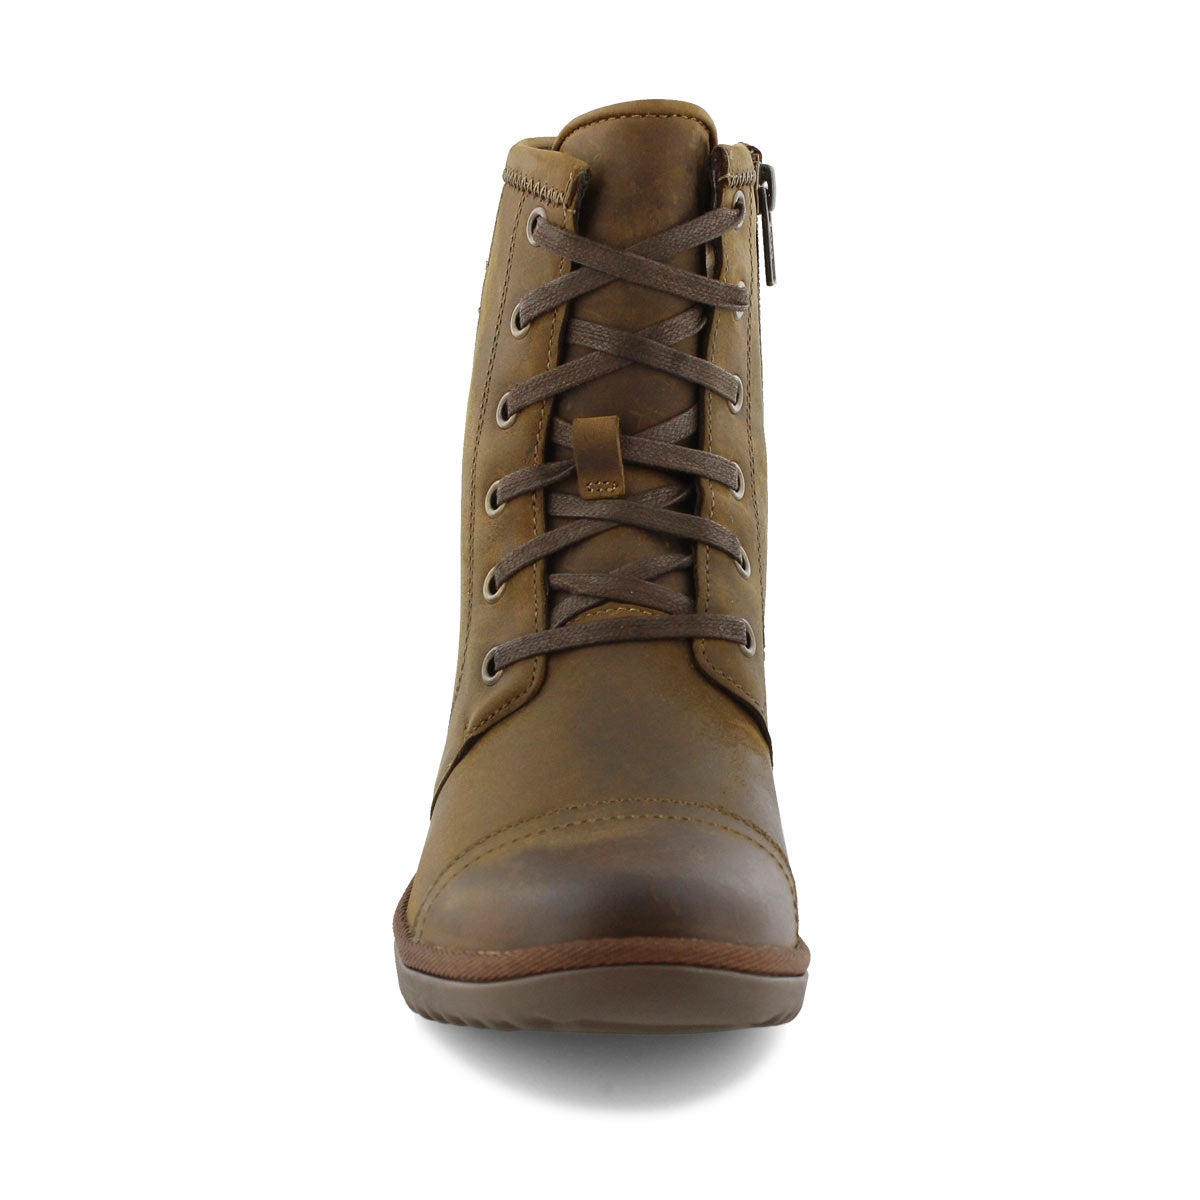 Lds Ashbury chestnut lace up wptf boot